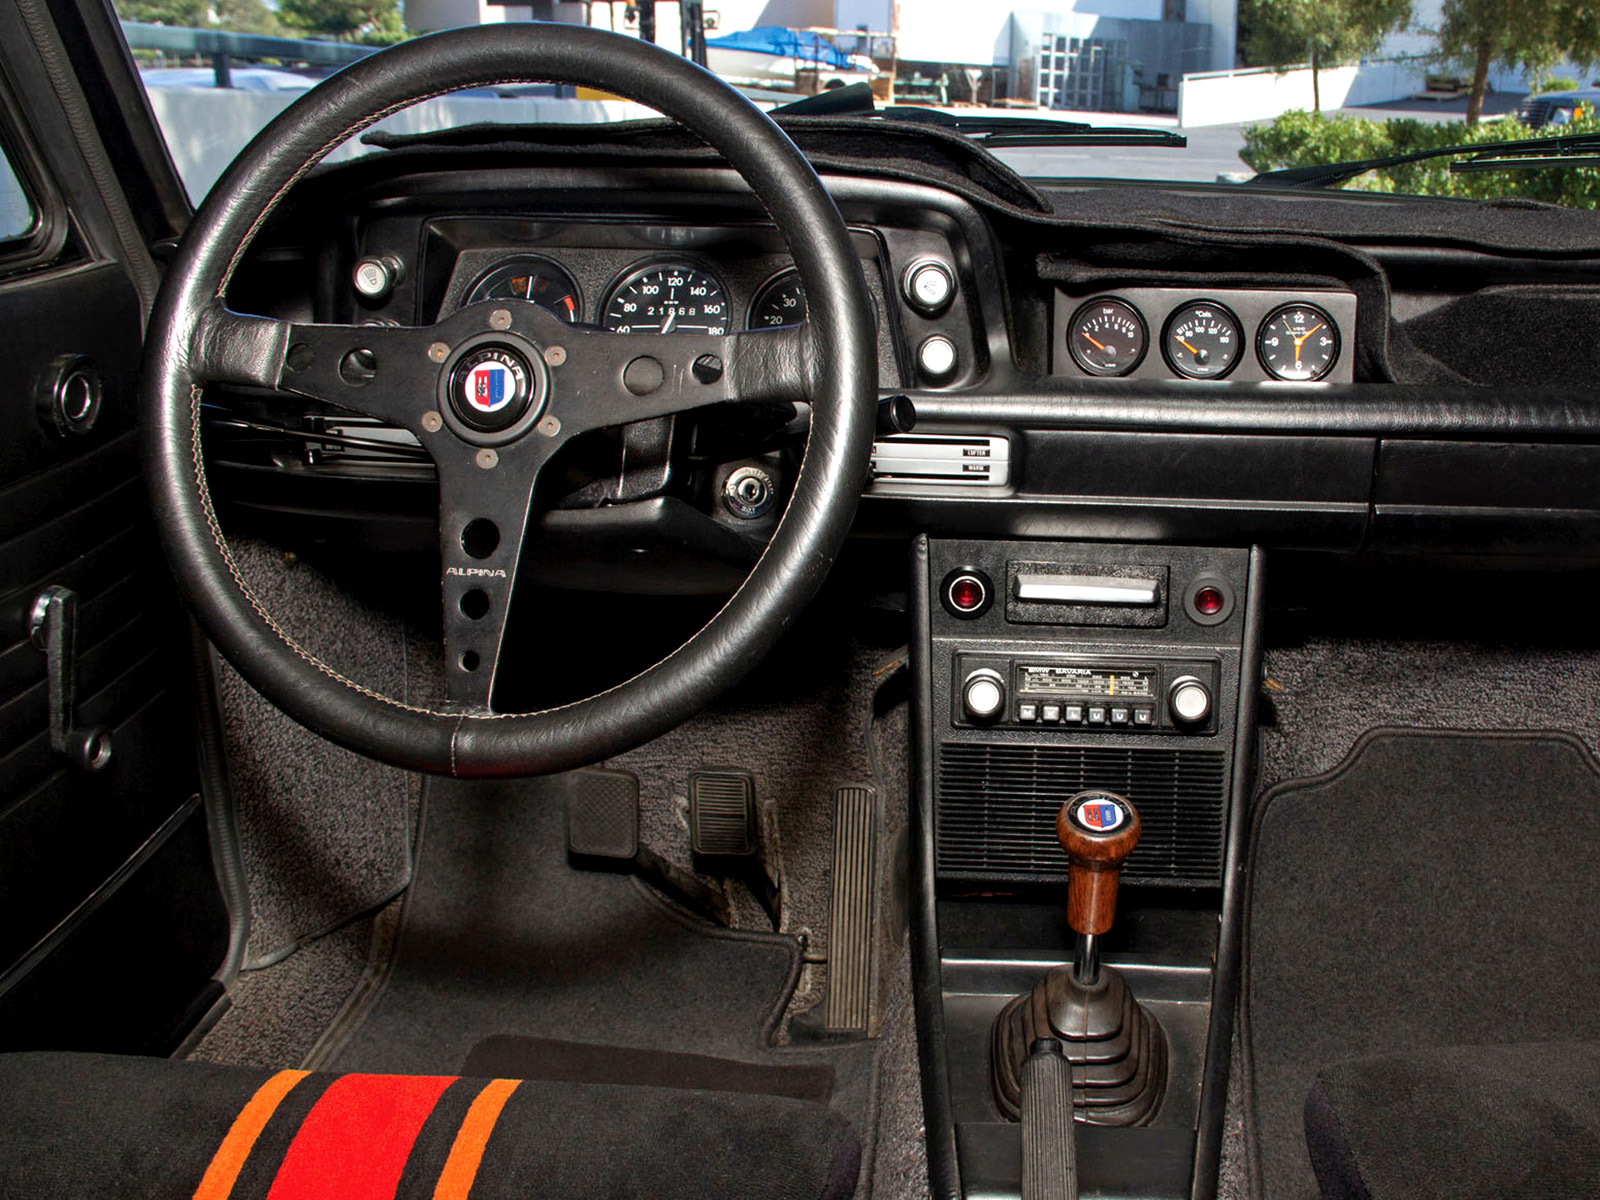 1974 BMW 2002 tii Touring by Alpina (E10) classic interior wallpaper background